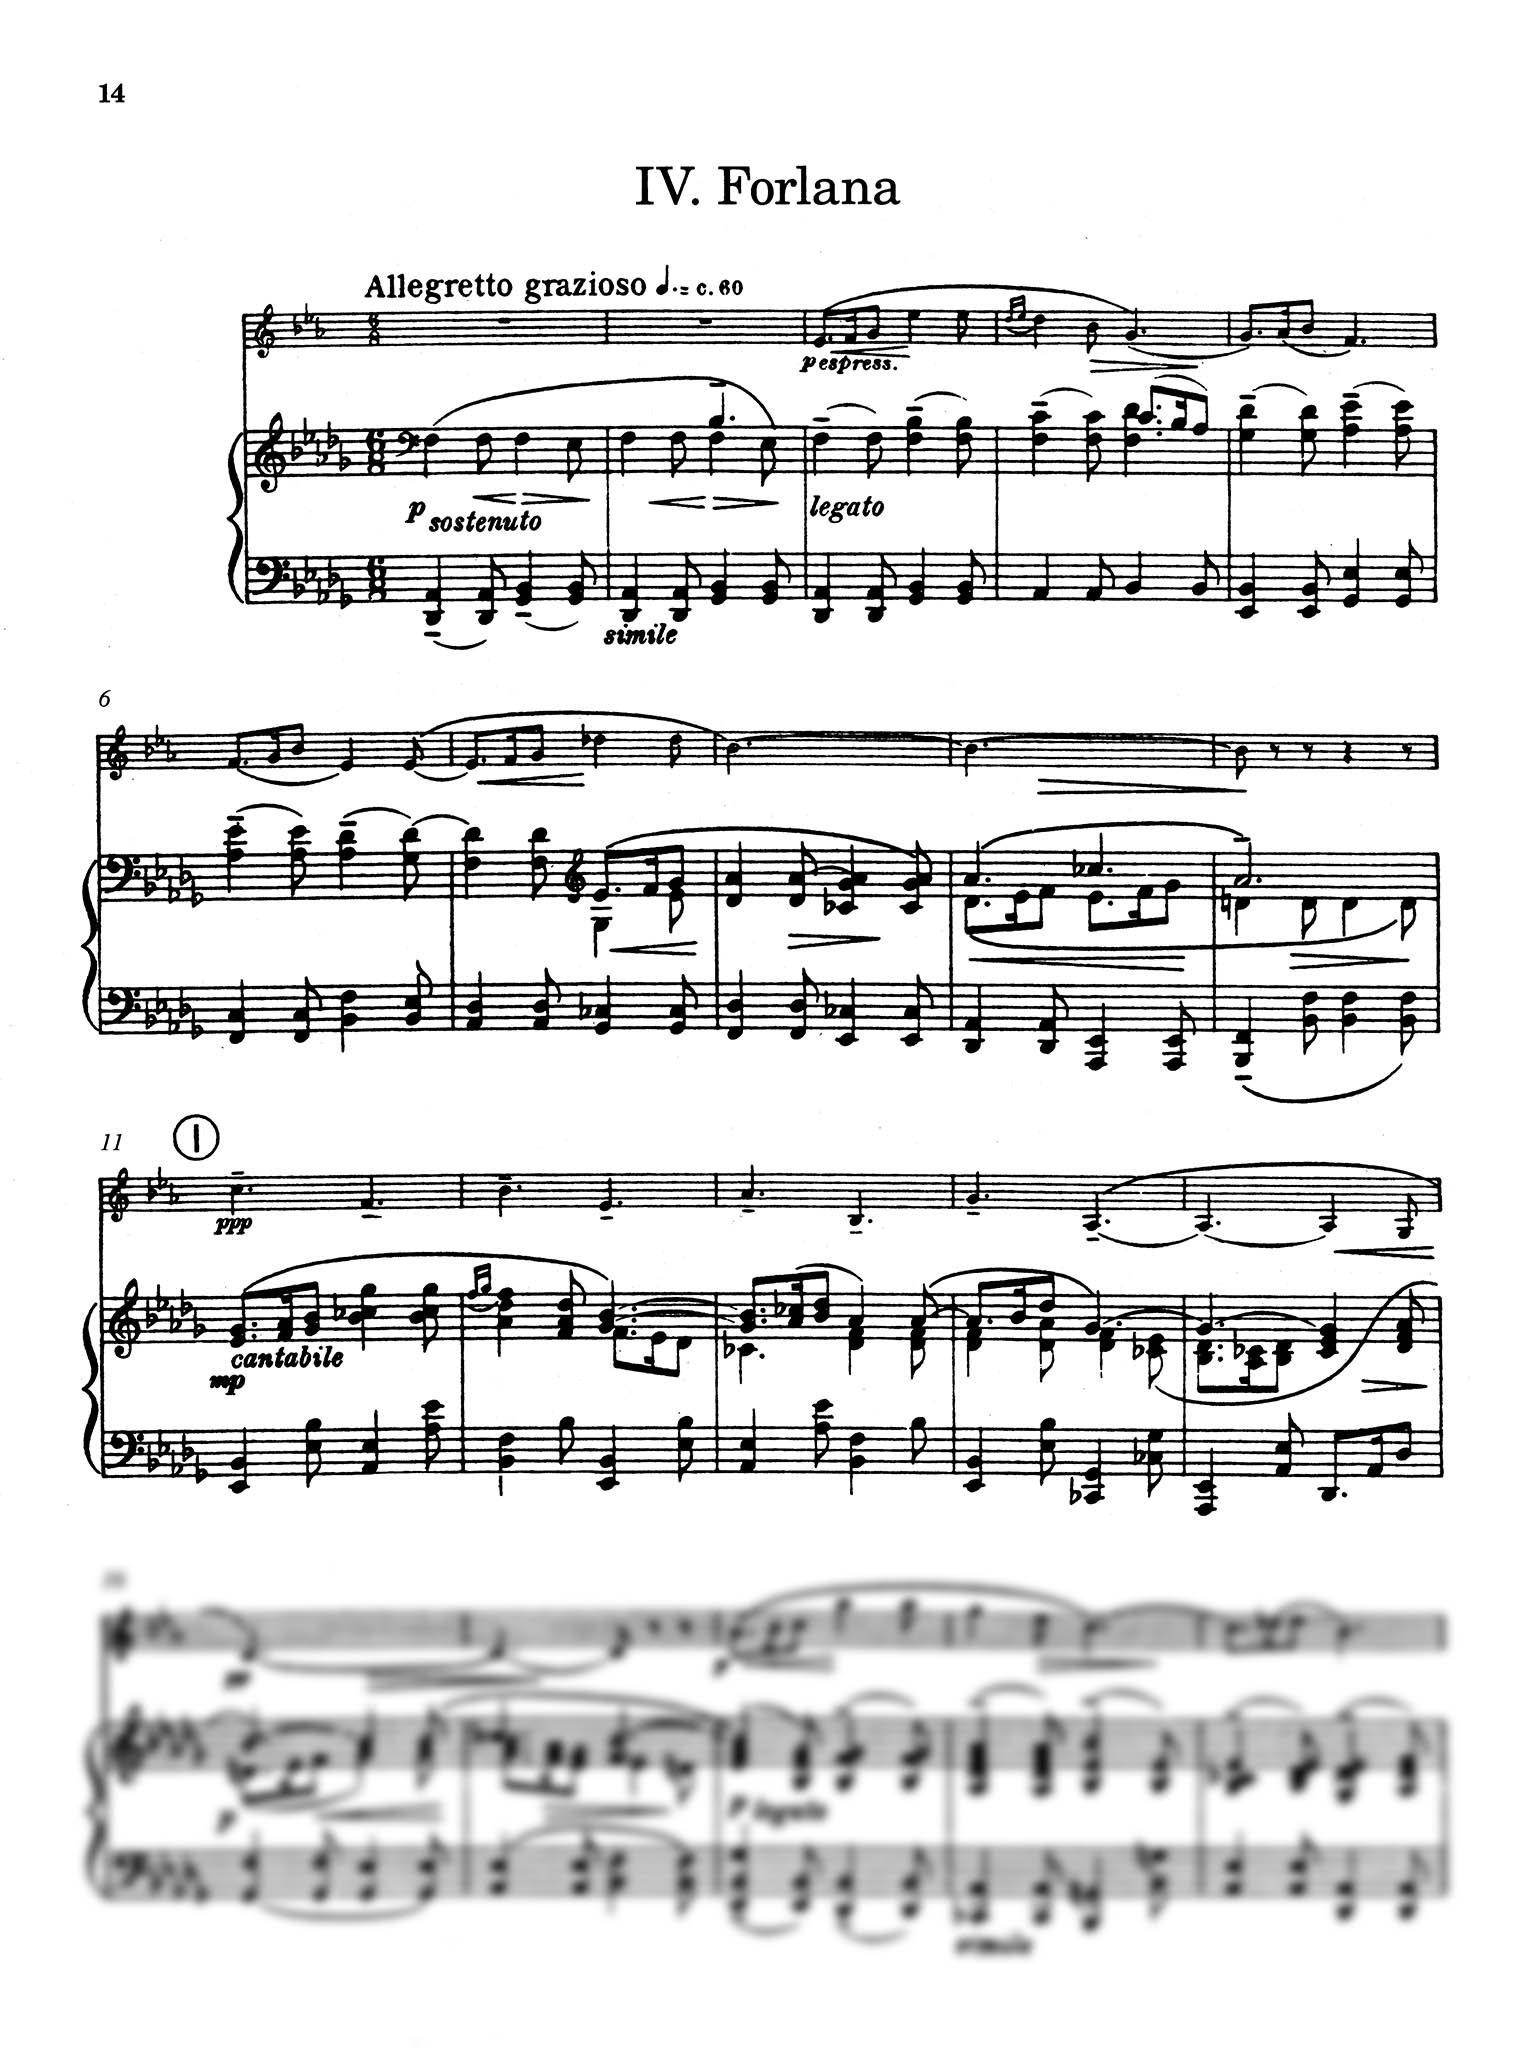 Five Bagatelles, Op. 23 - Movement 4